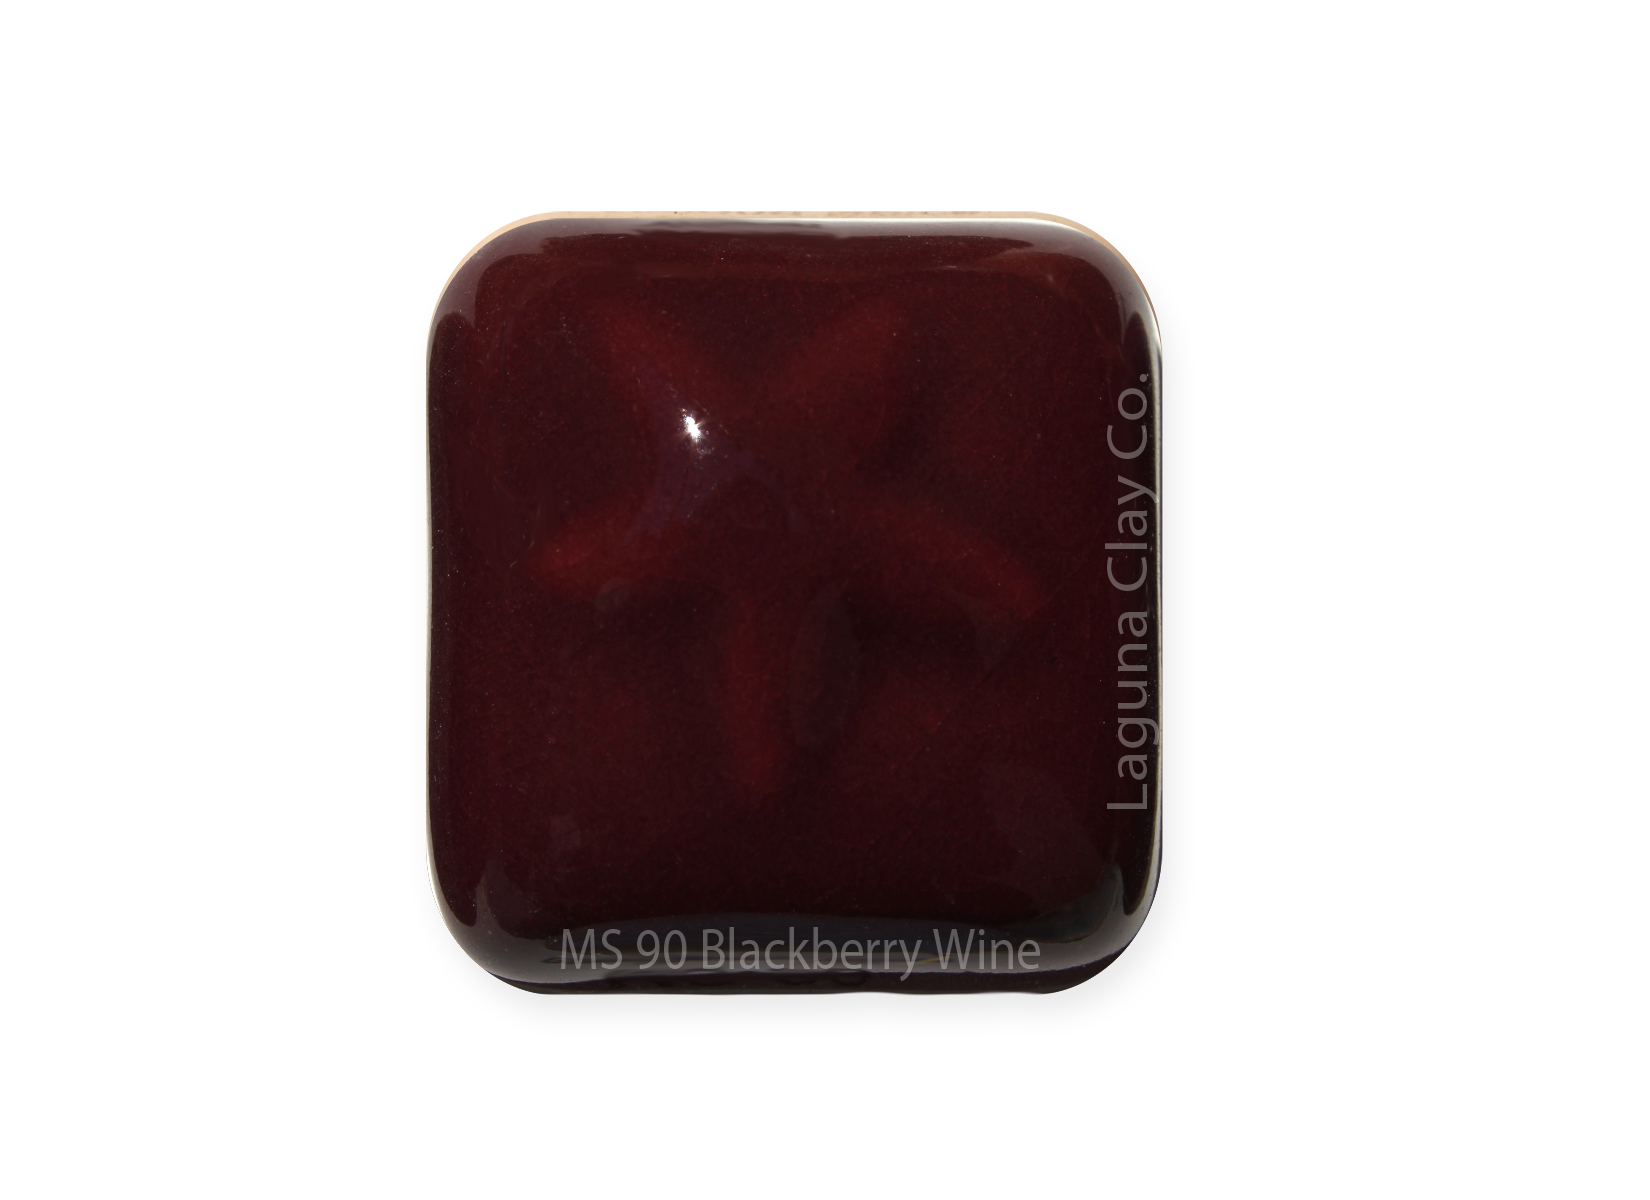 MS-90 Blackberry Wine